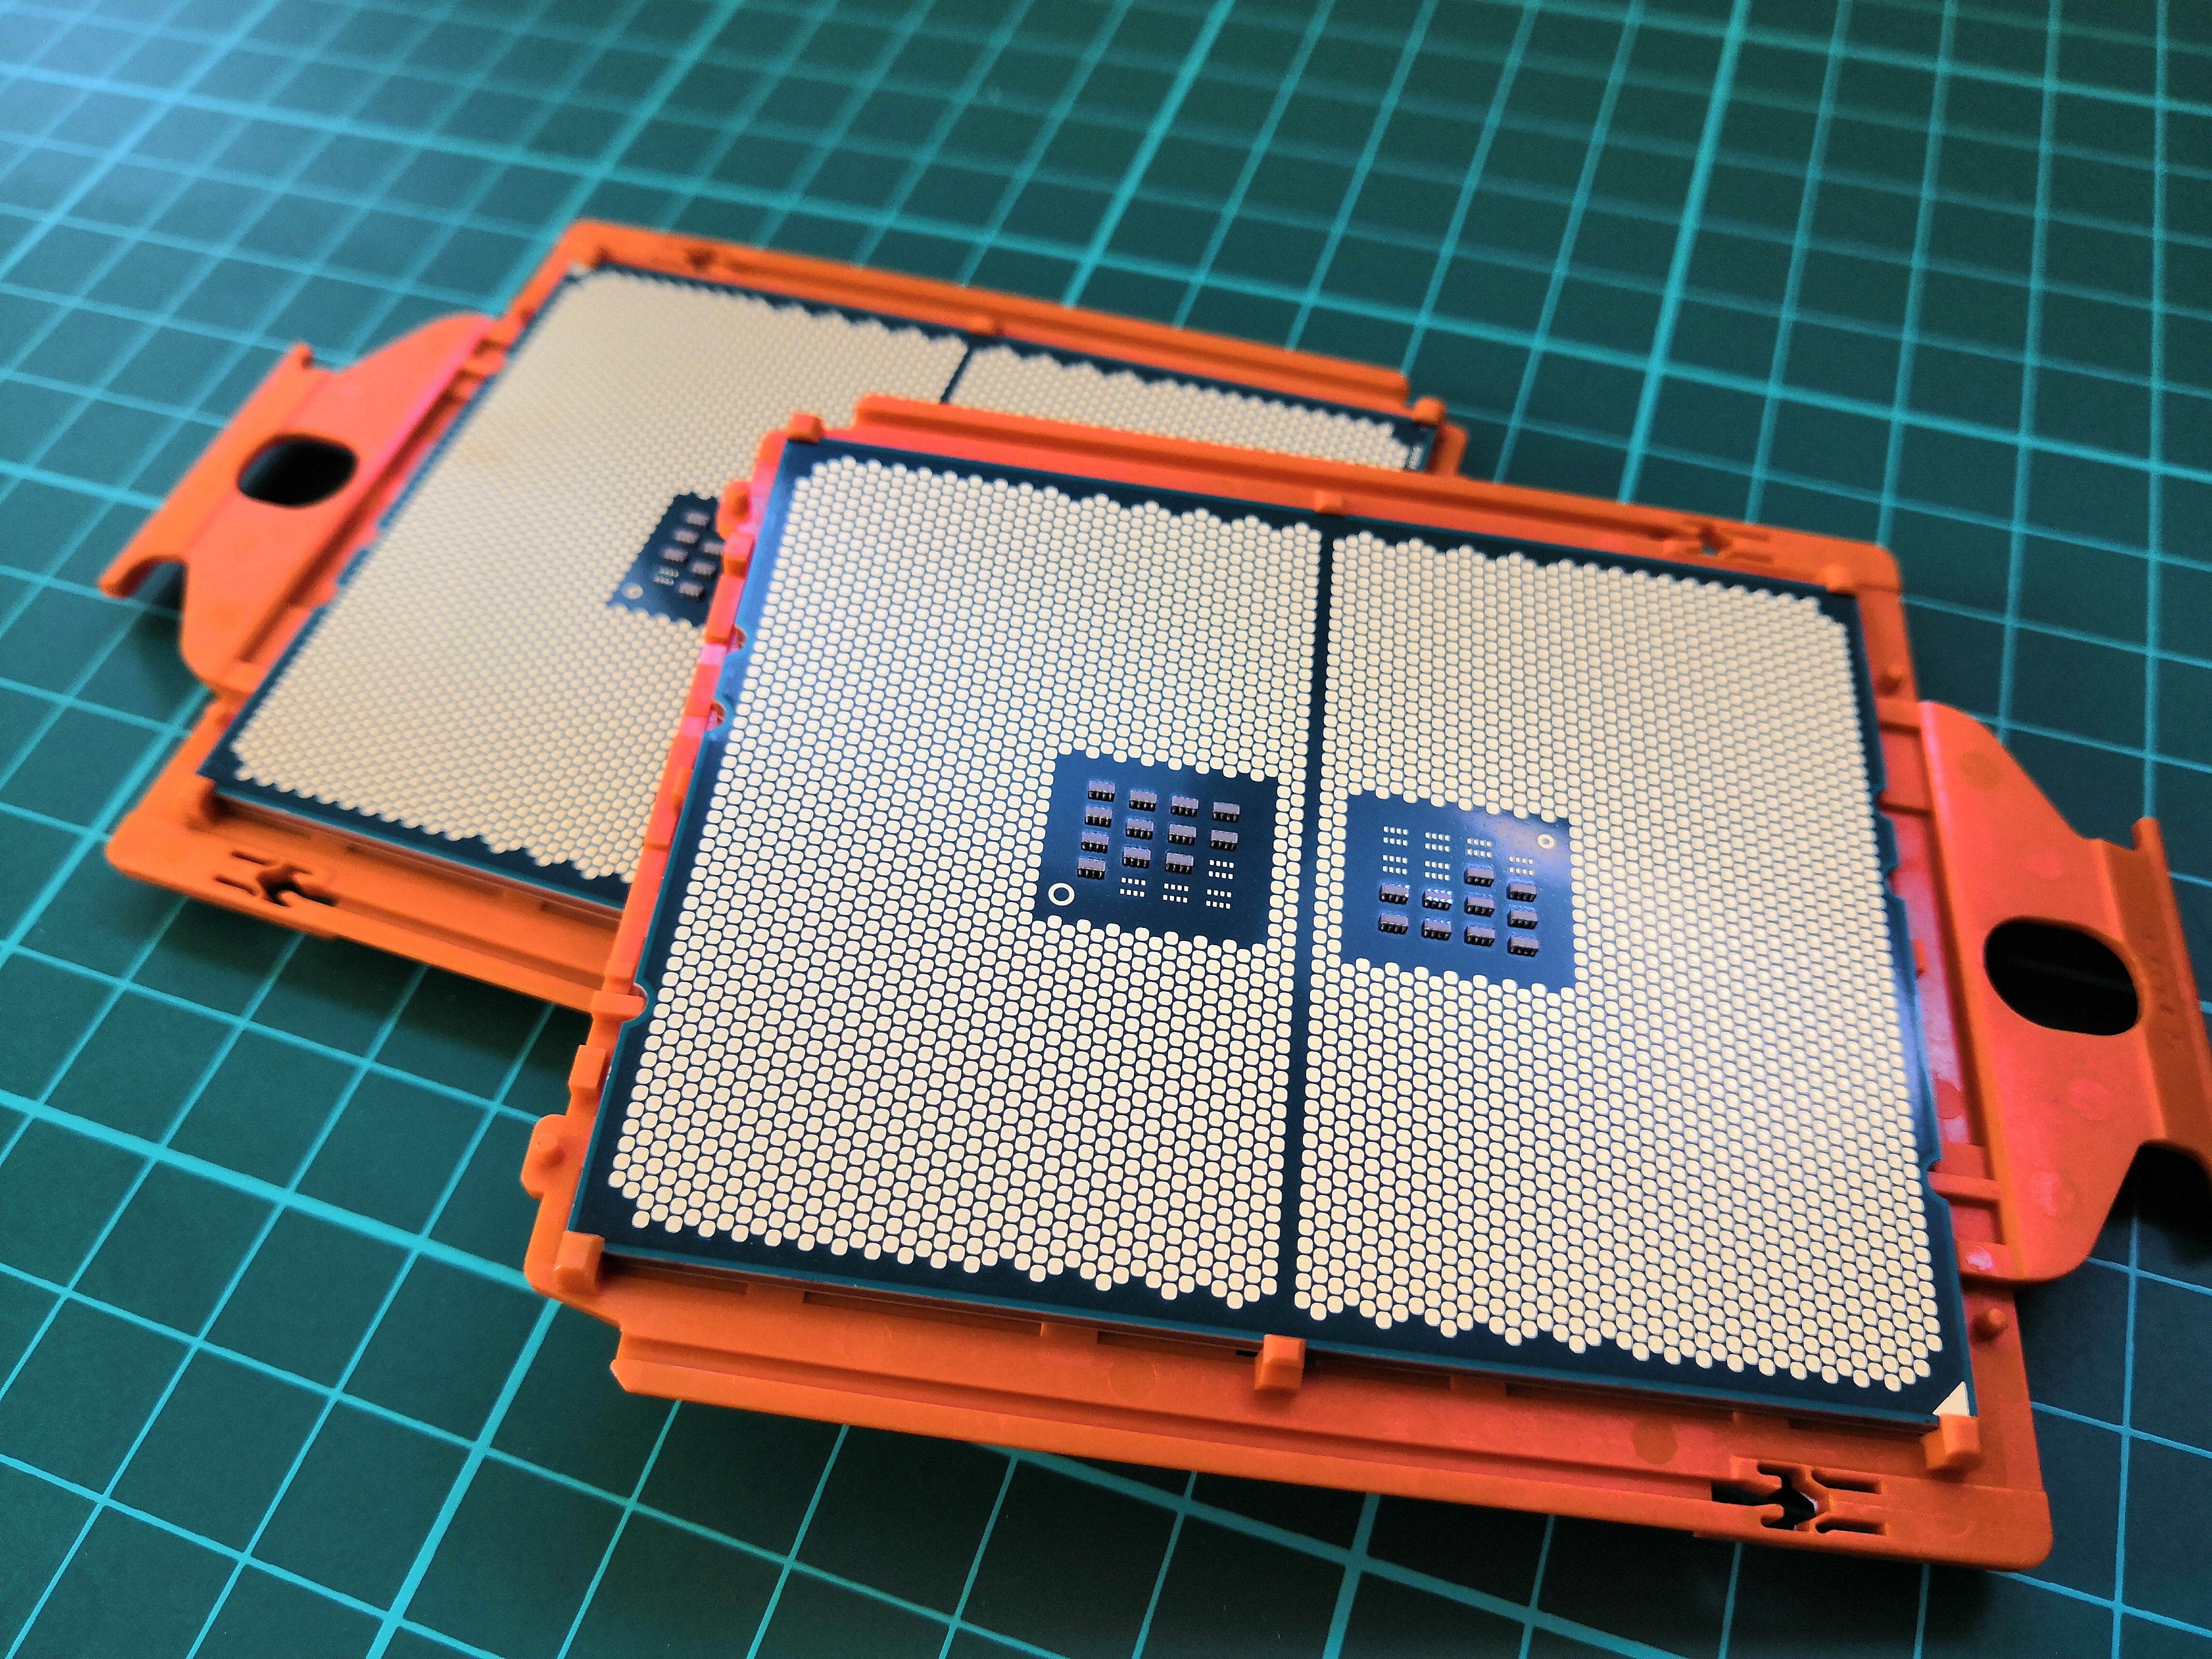 The AMD Threadripper 2 CPU Review: The 24-Core 2970WX and 12-Core